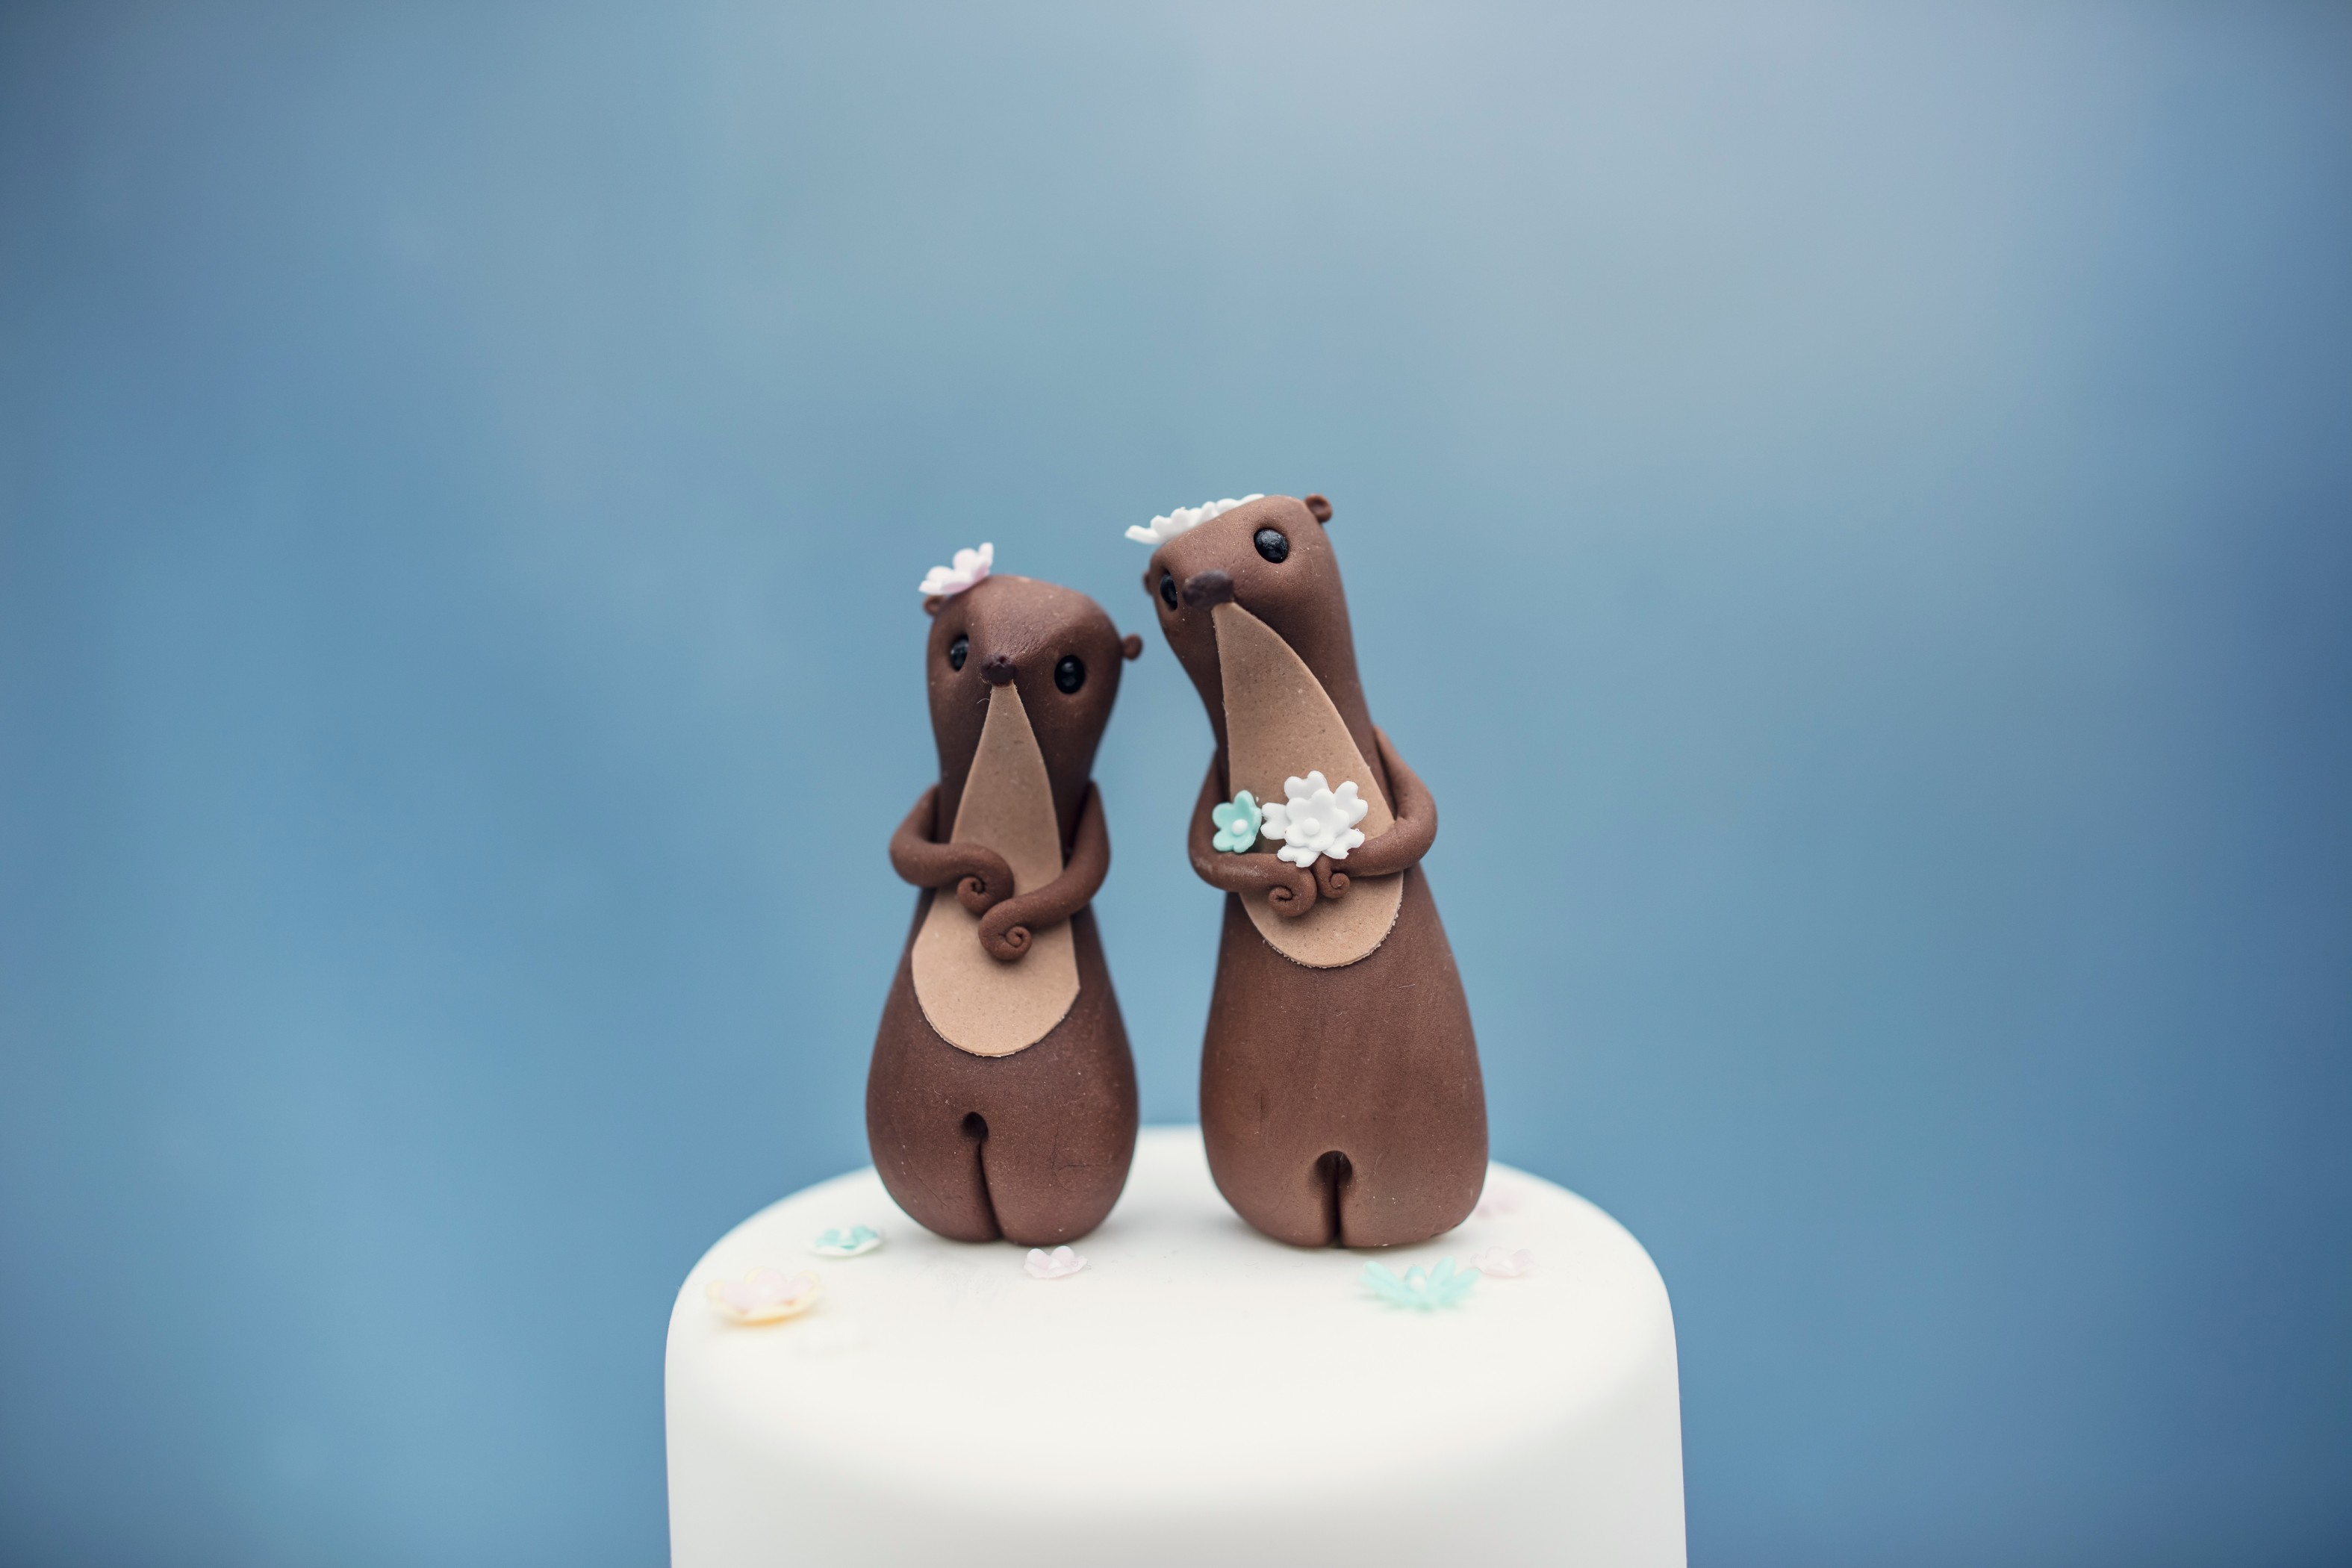 Tiny Sarah's Cakes - vegan wedding cakes - creative wedding cake - unique wedding cakes - alternative wedding cake 1 (2)